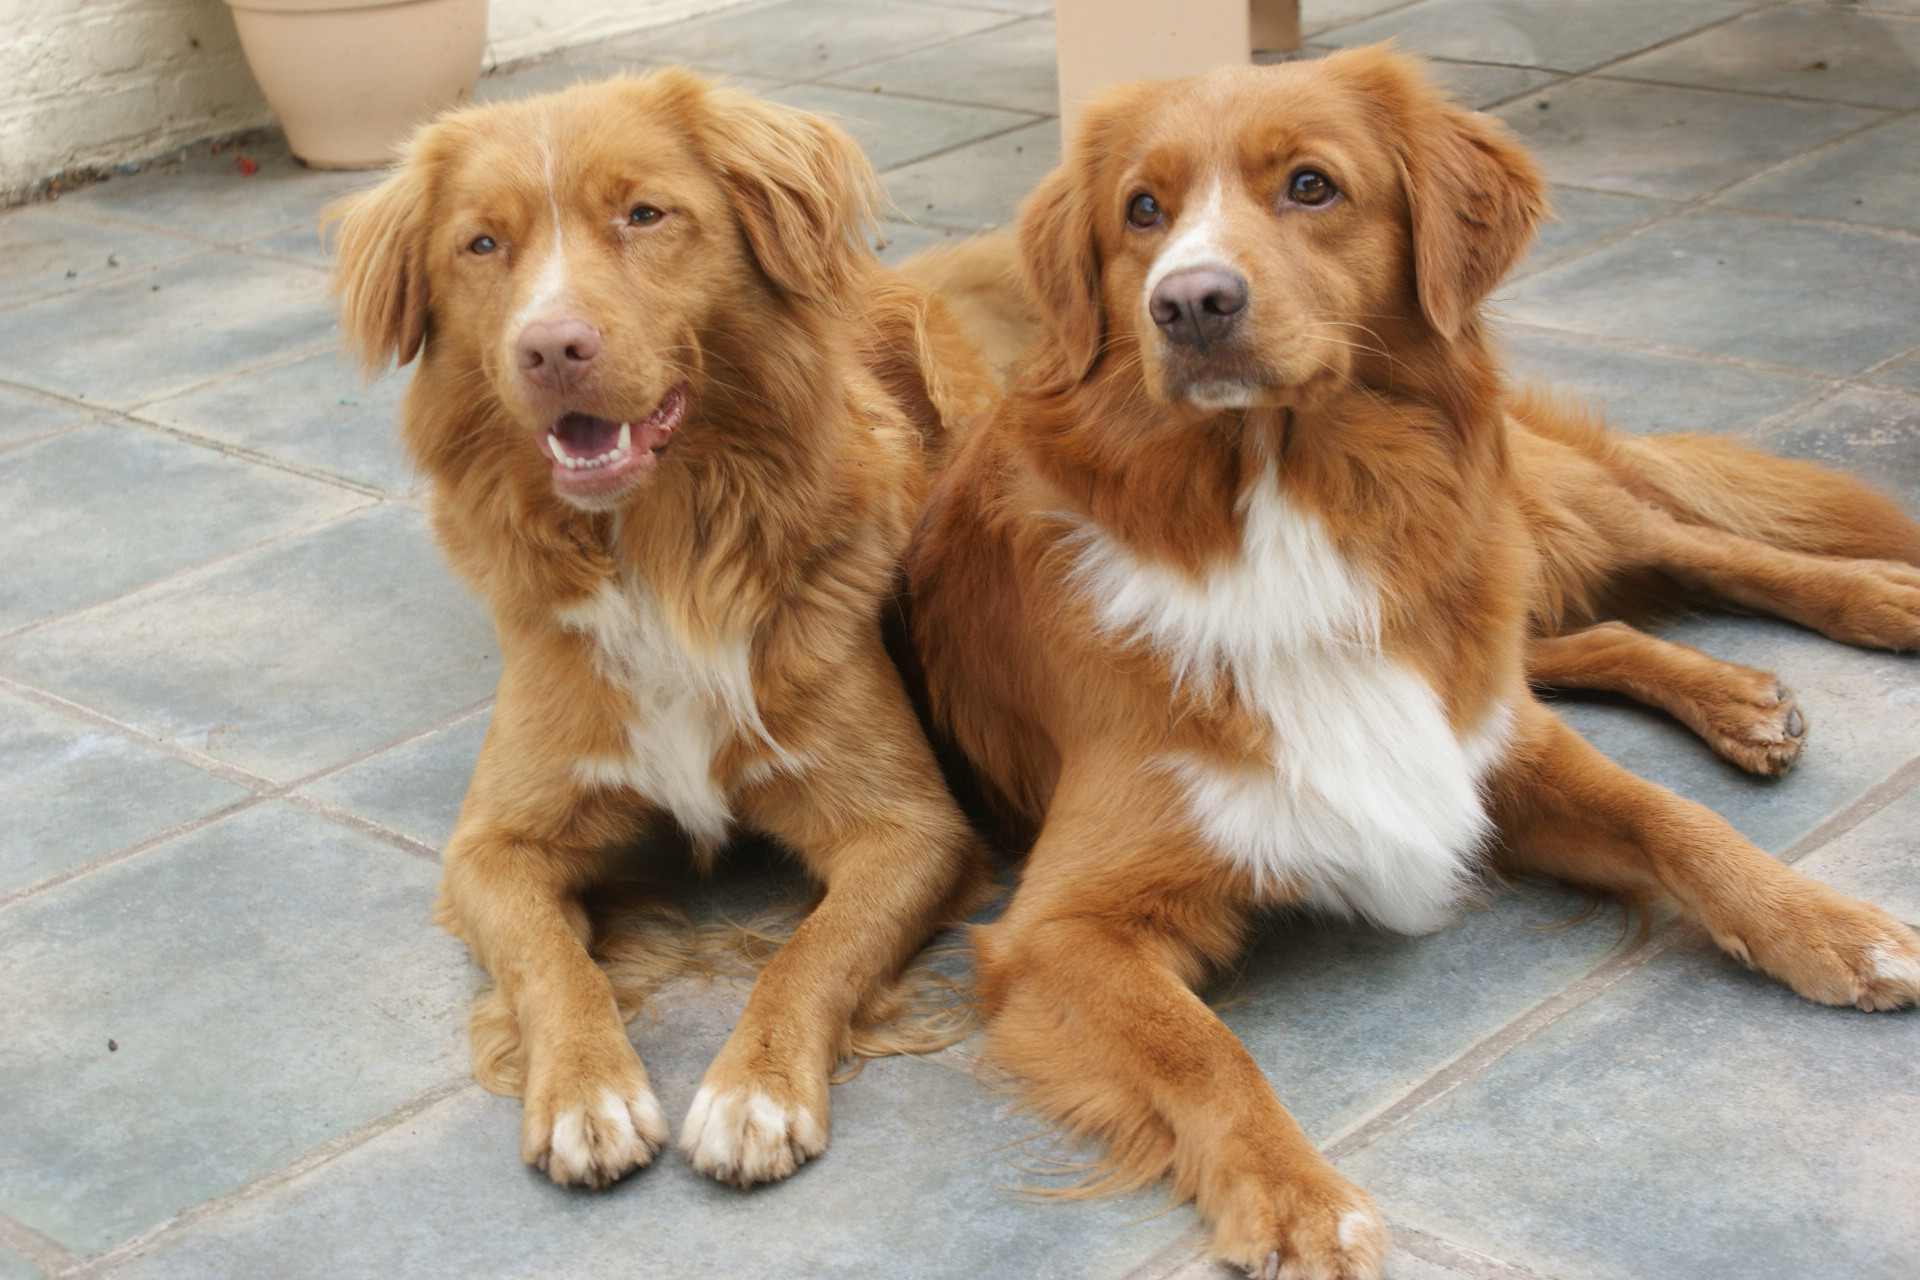 Two Nova Scotia Duck-Tolling Retriever dogs wallpaper